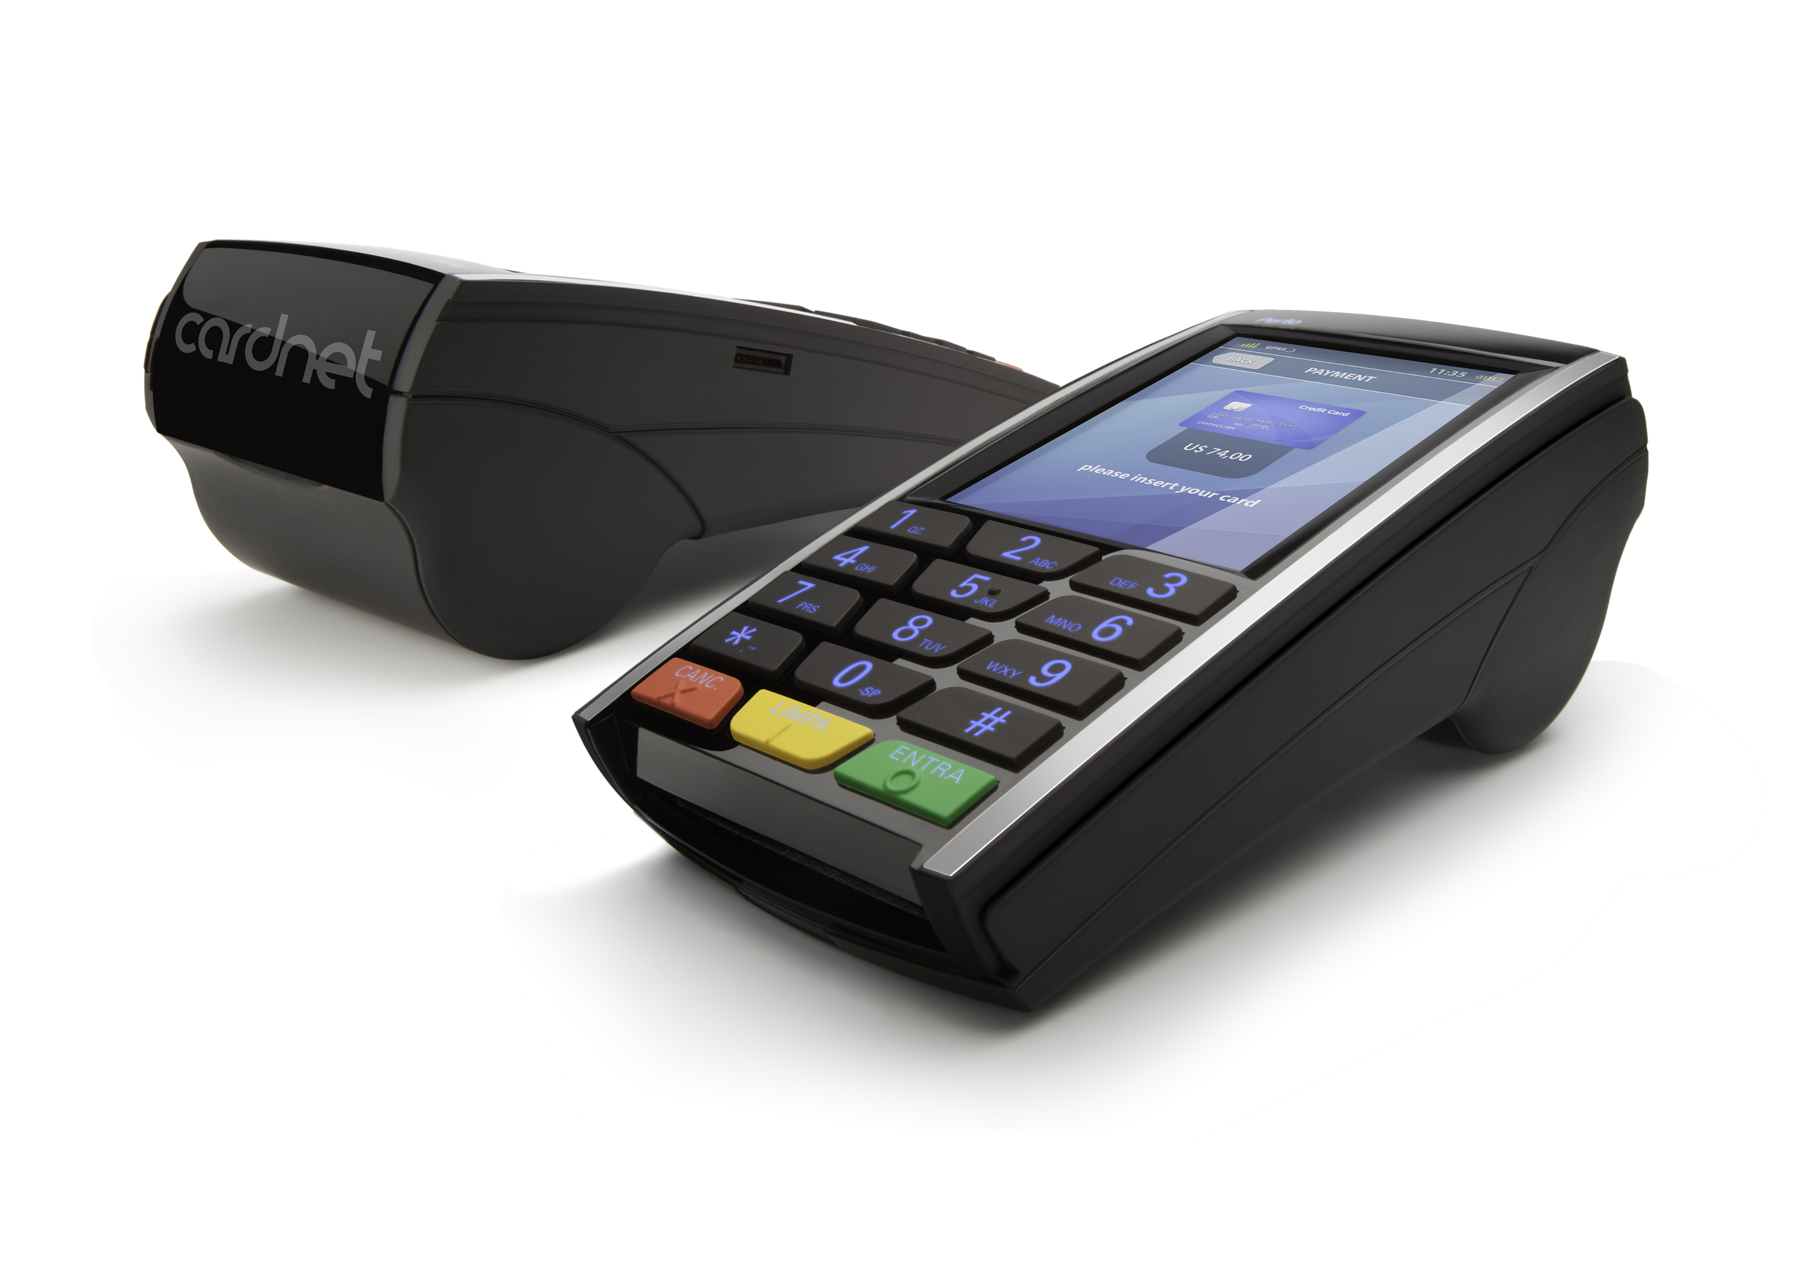 Veloh with built-in camera innovates in payment methods market